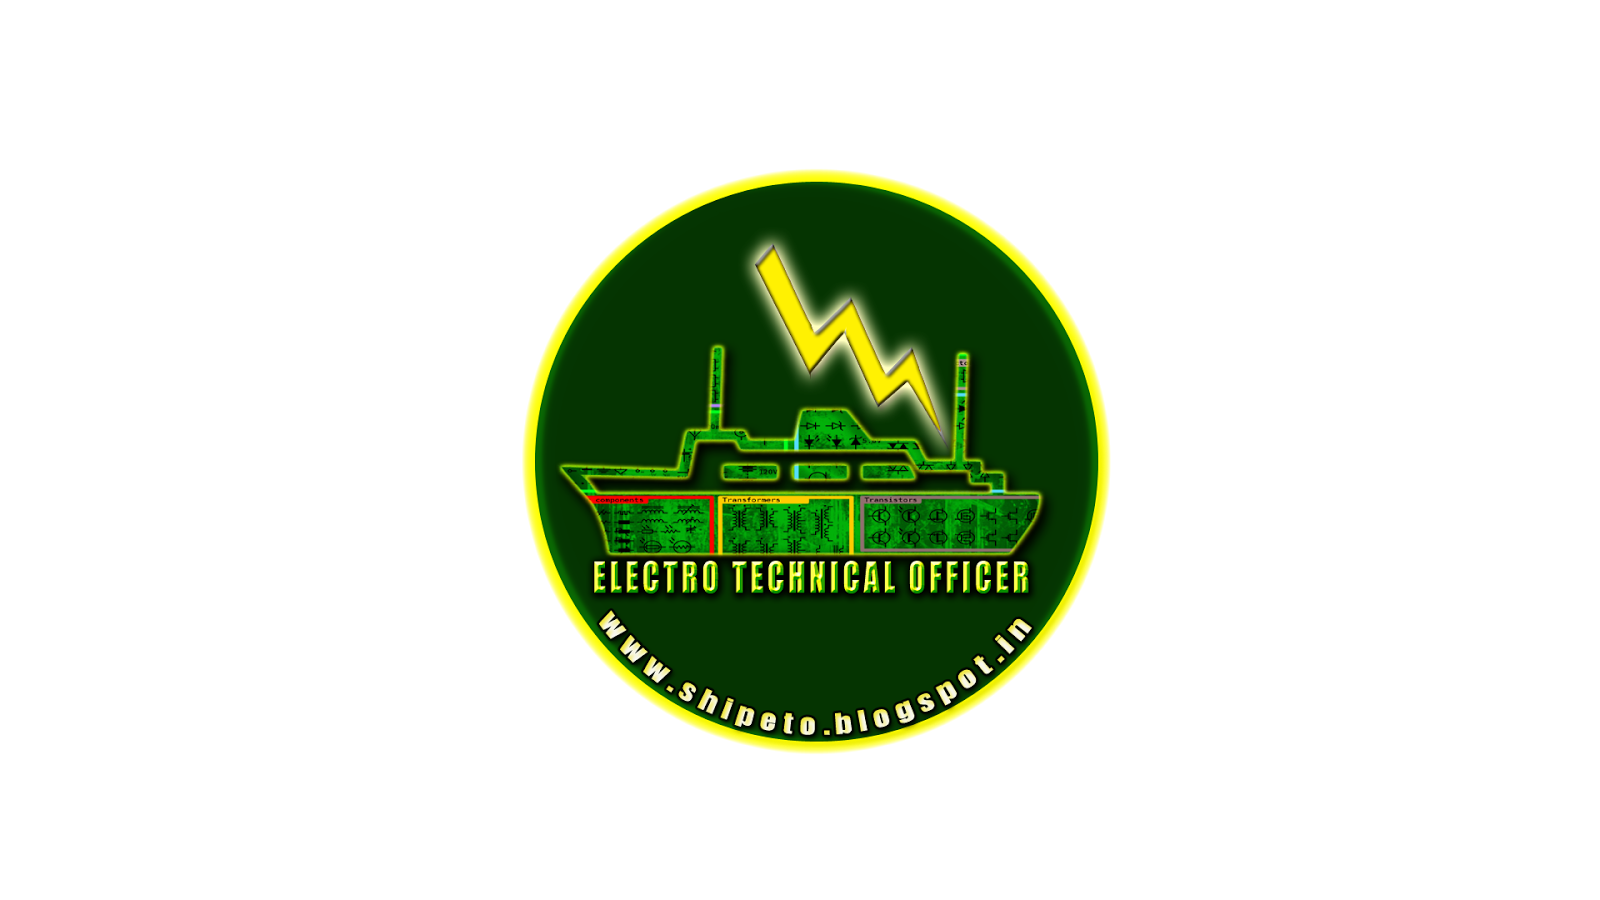 Electro Technical Officer